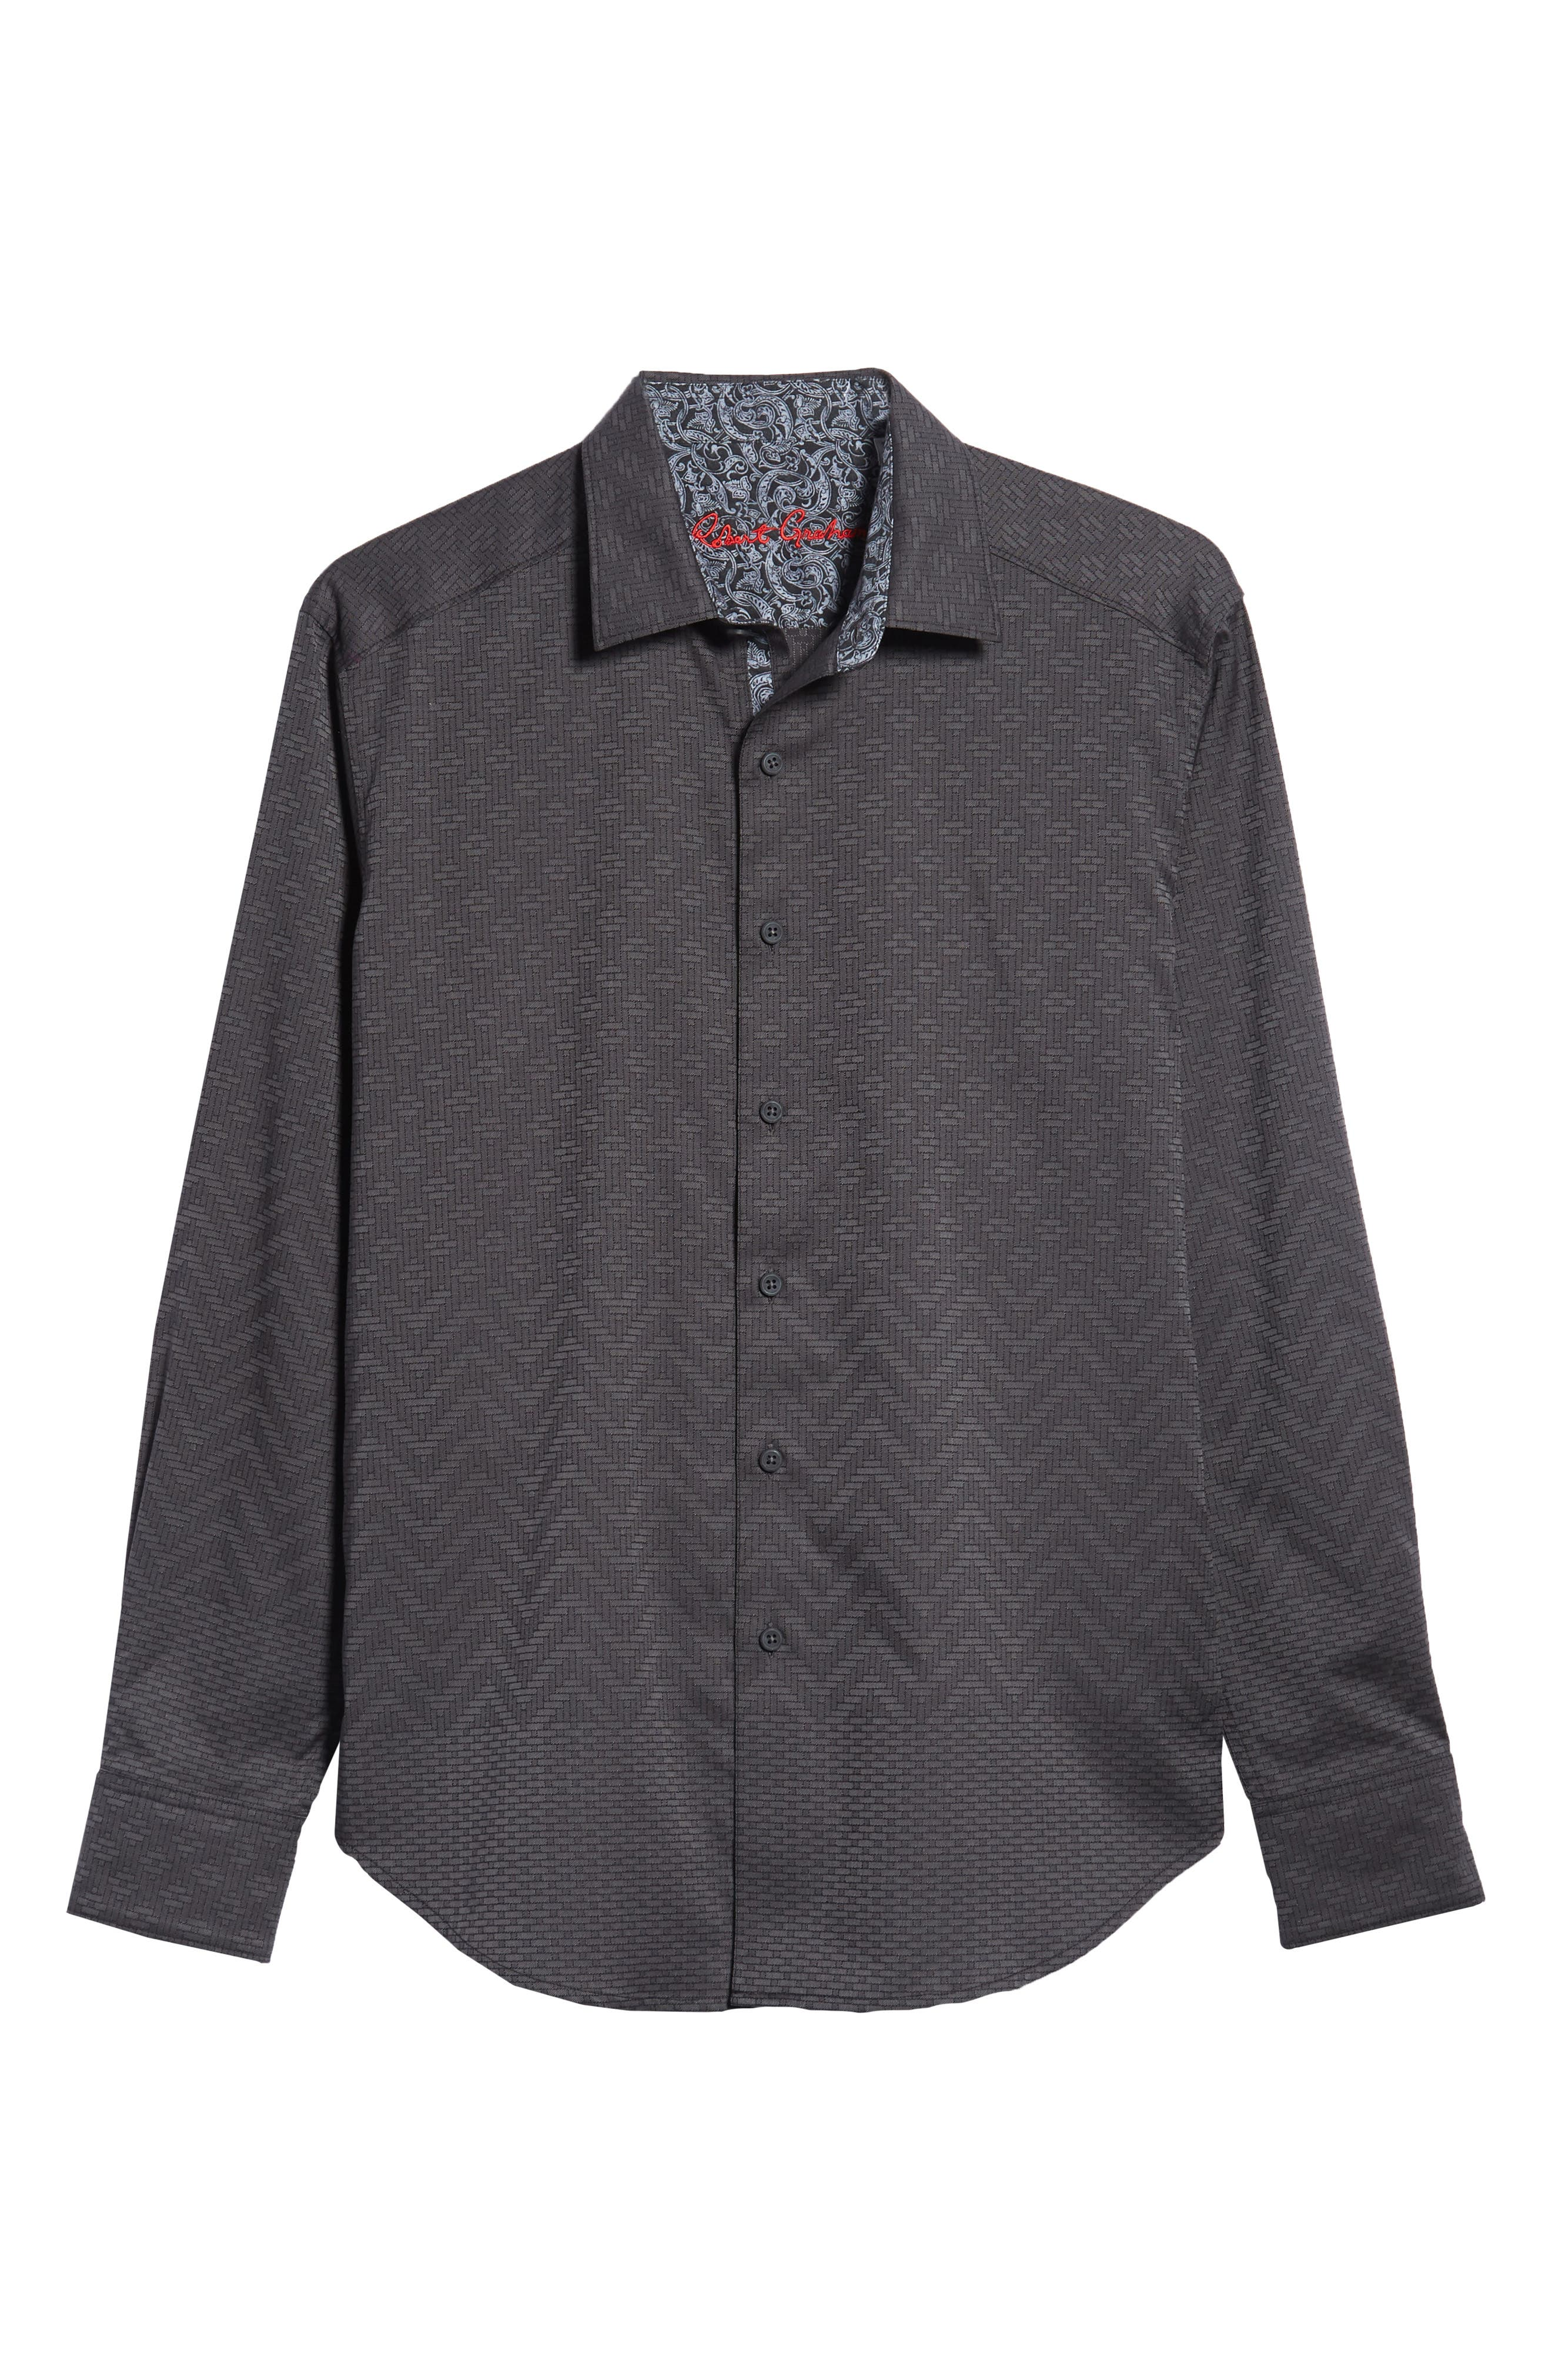 Wallace Classic Fit Sport Shirt,                             Alternate thumbnail 5, color,                             GREY